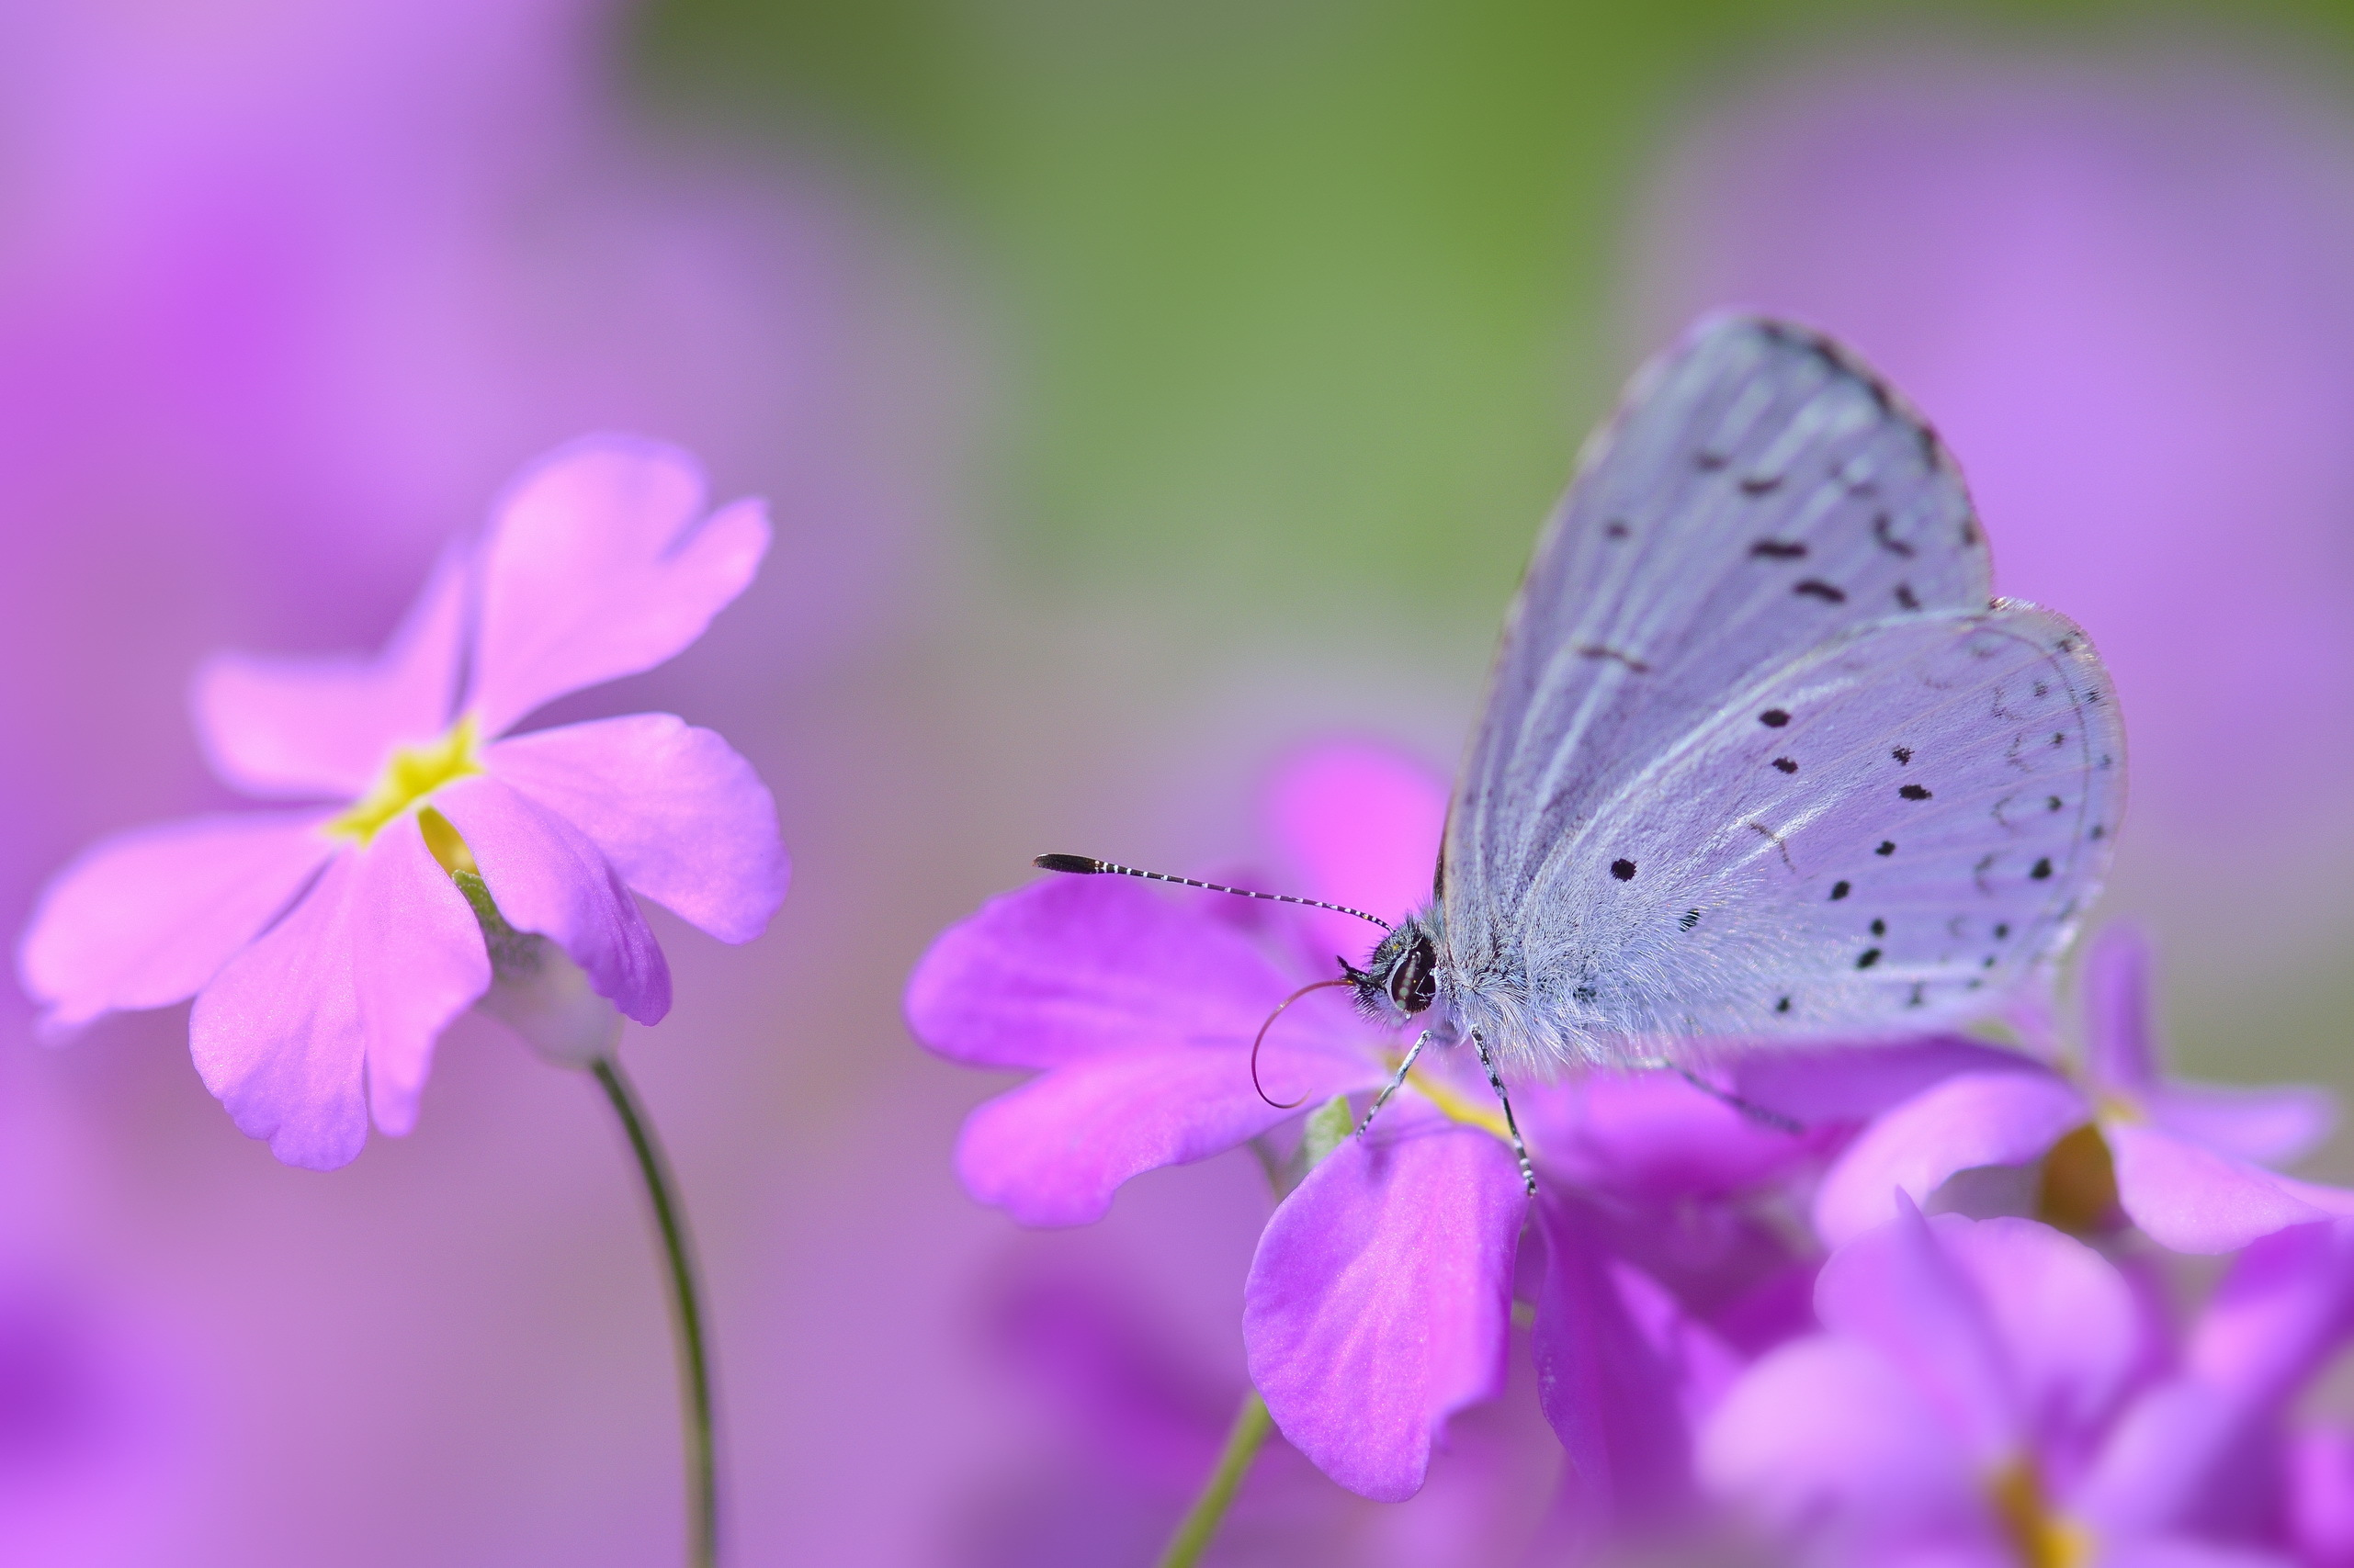 66925 download wallpaper Lilac, Flower, Macro, Petals, Stains, Spots, Butterfly screensavers and pictures for free